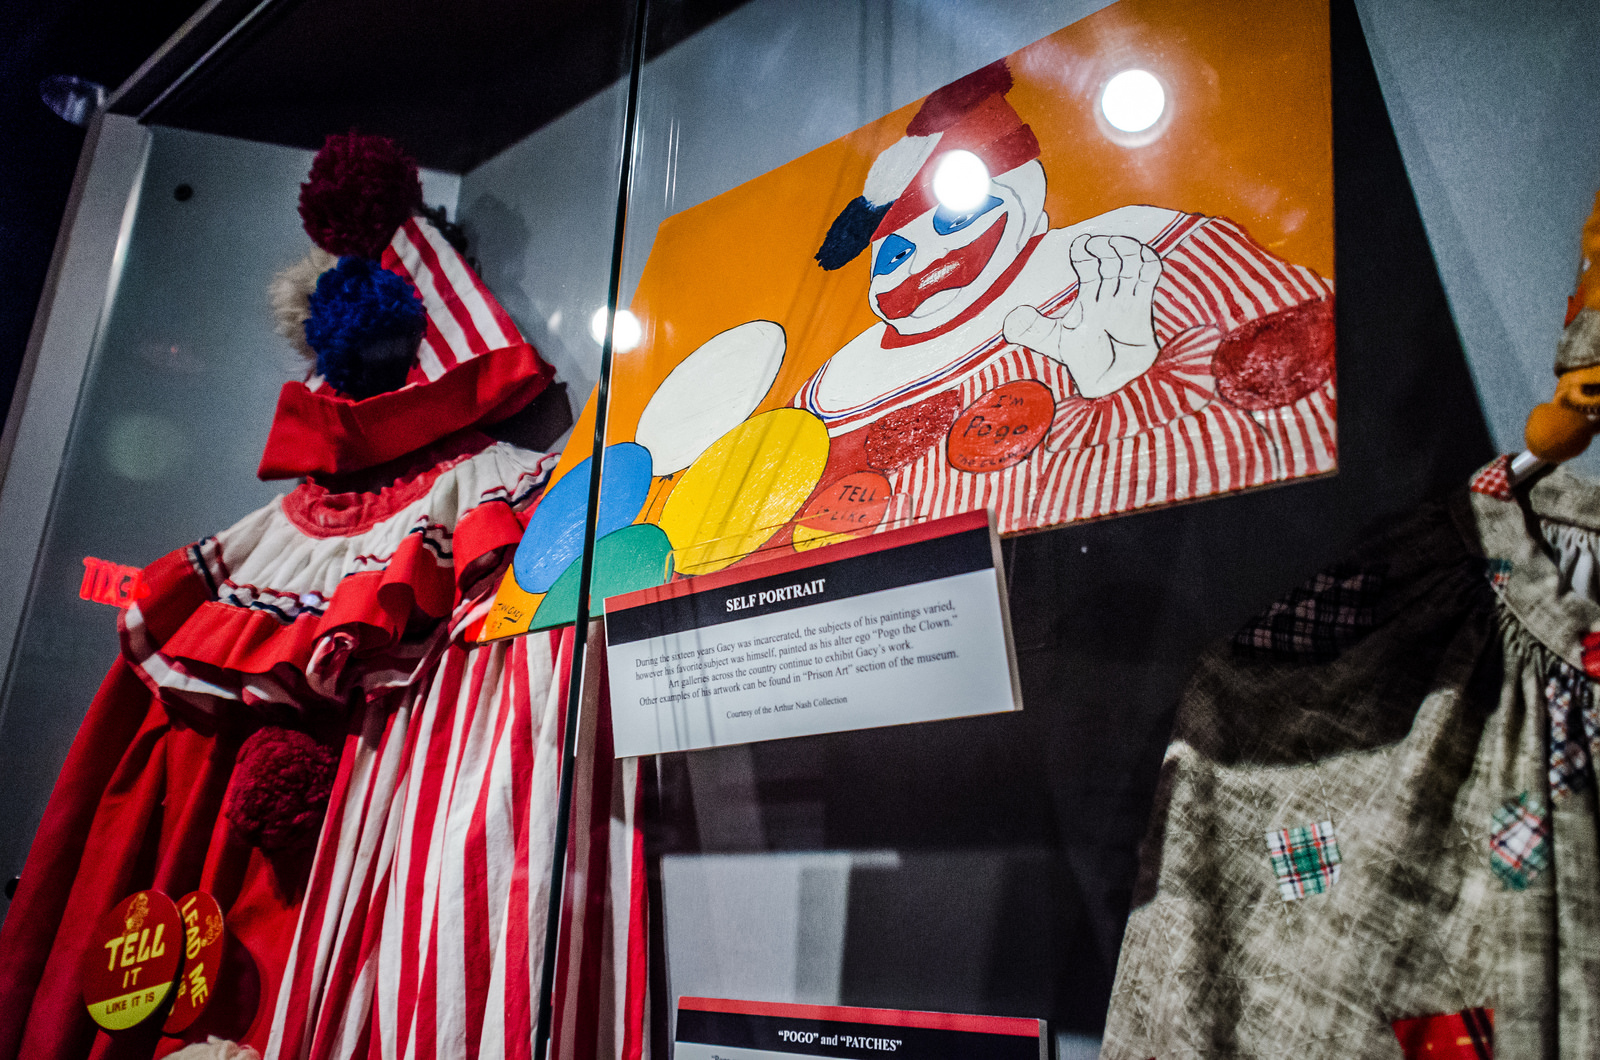 John Wayne Gacy and the Birth of the Murderabilia Industry